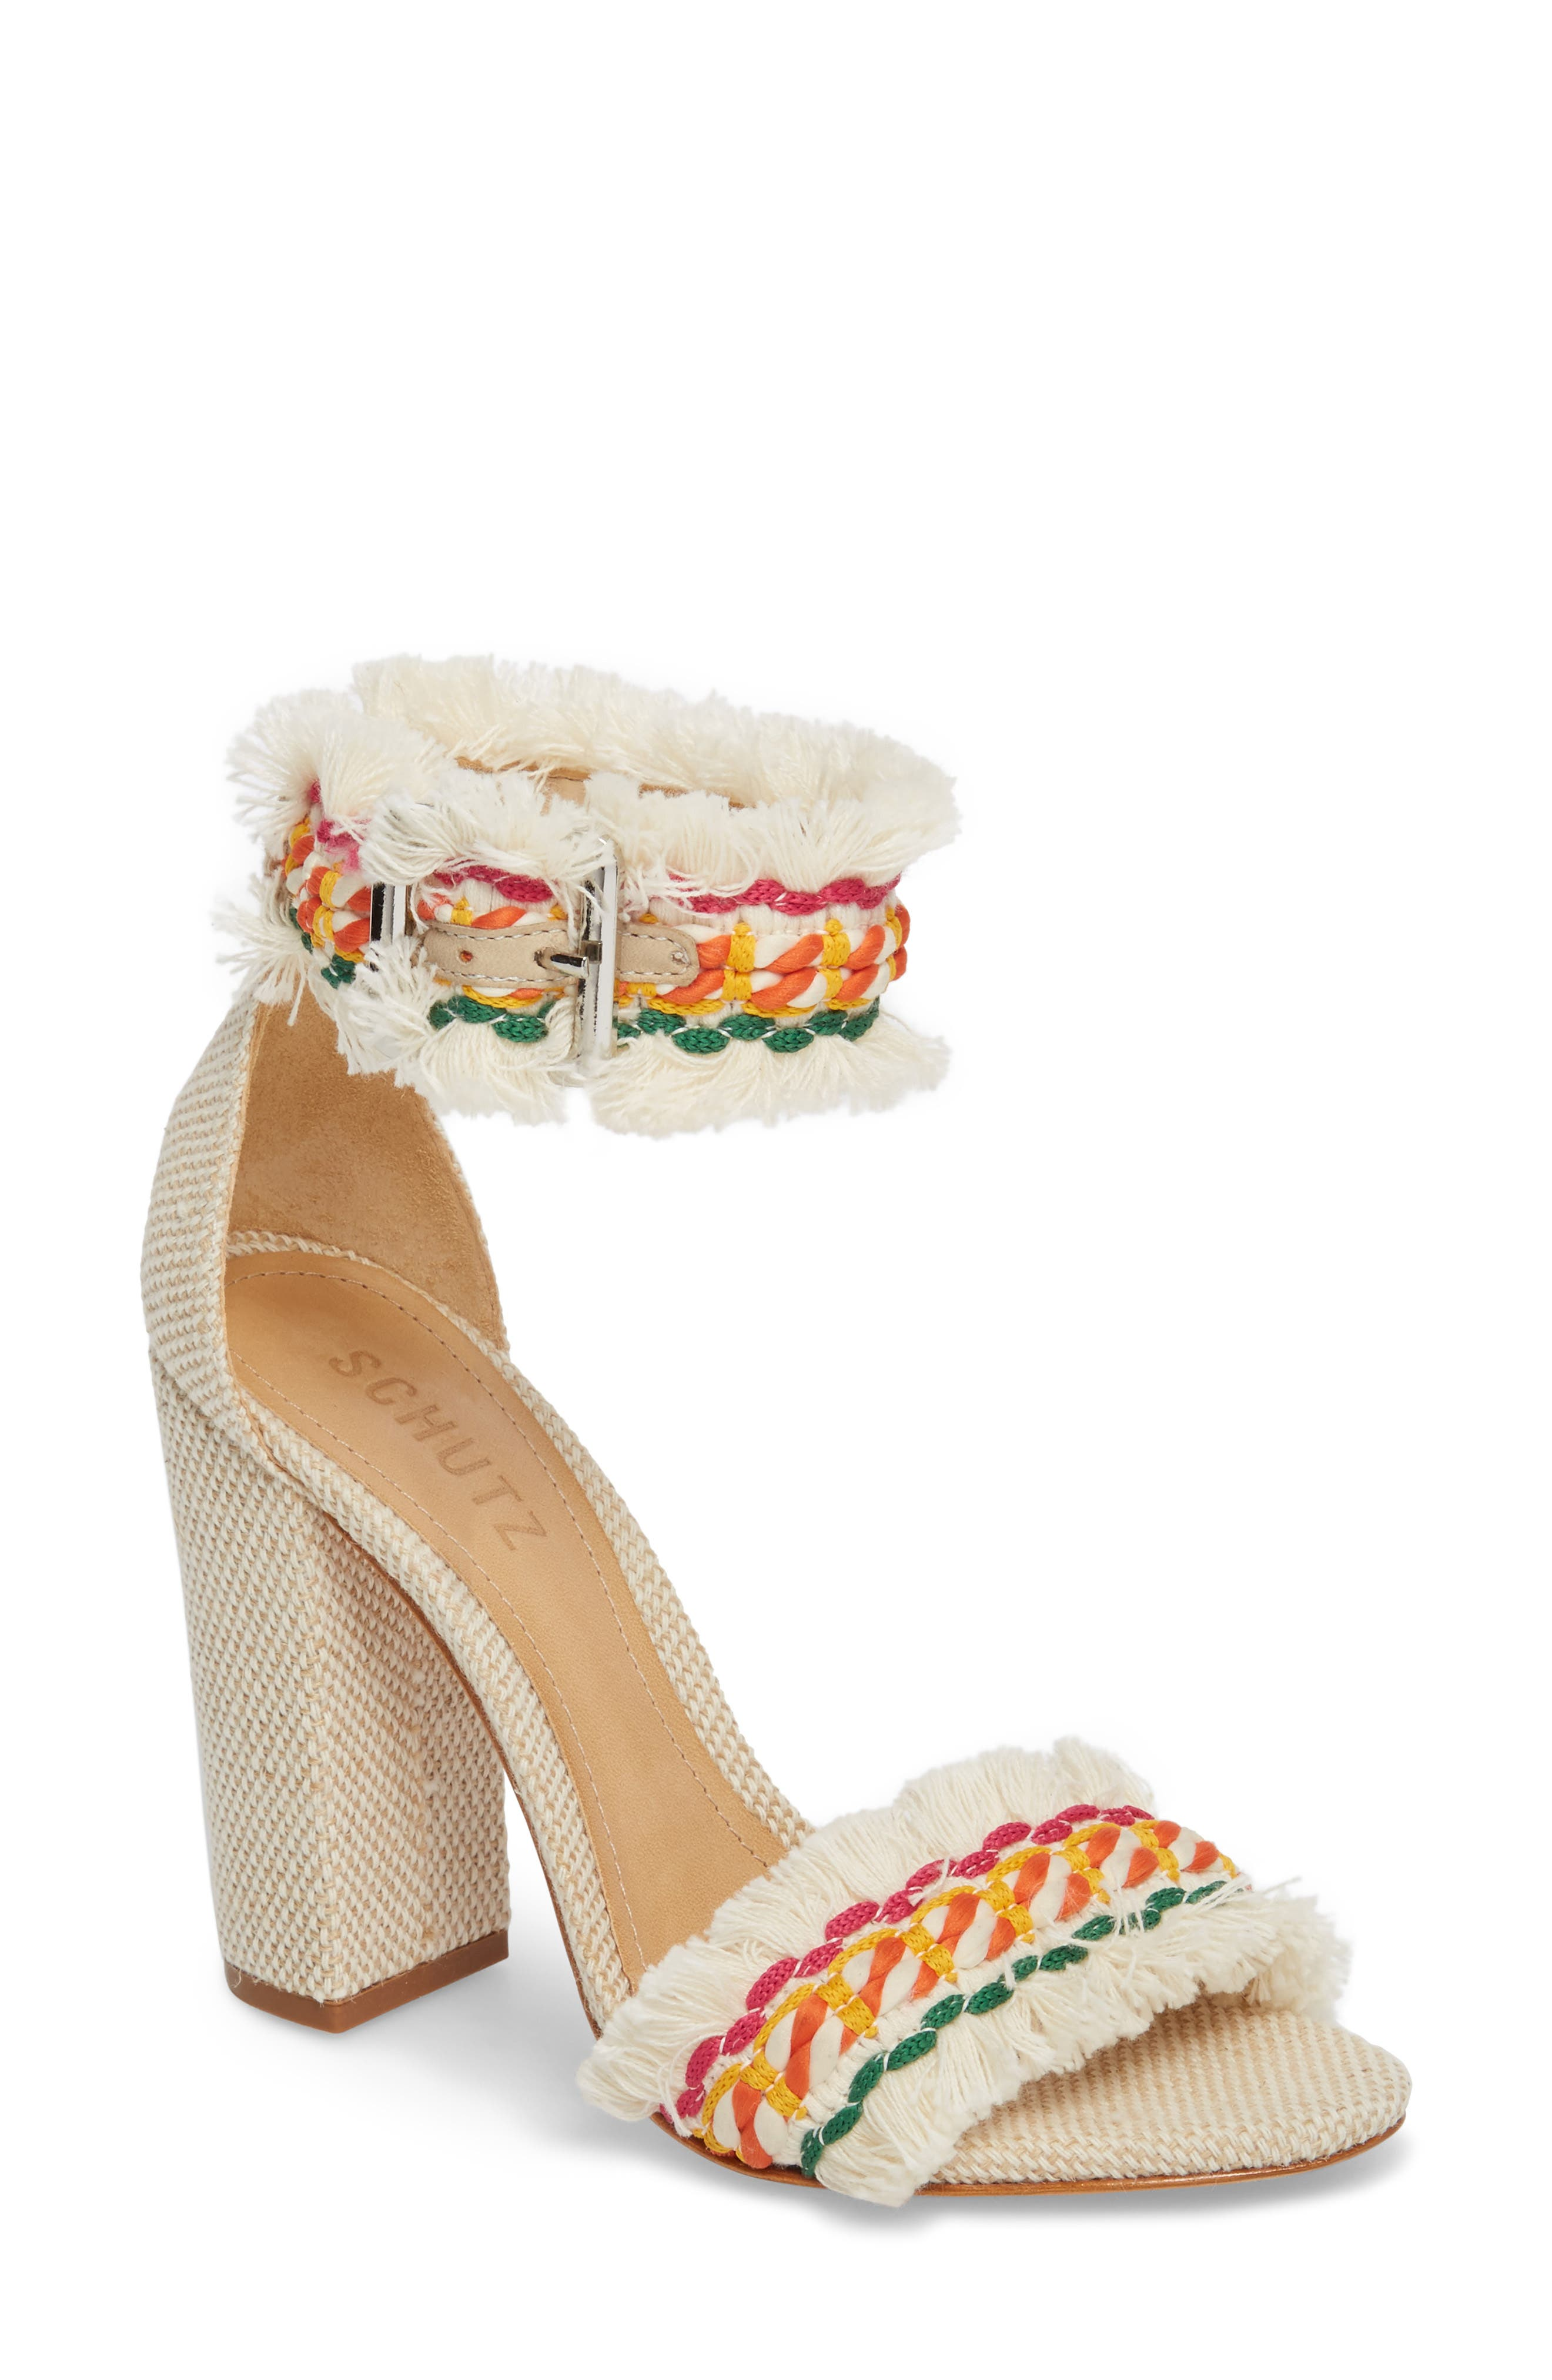 Alternate Image 1 Selected - Schutz Zoola Block Heel Sandal (Women)